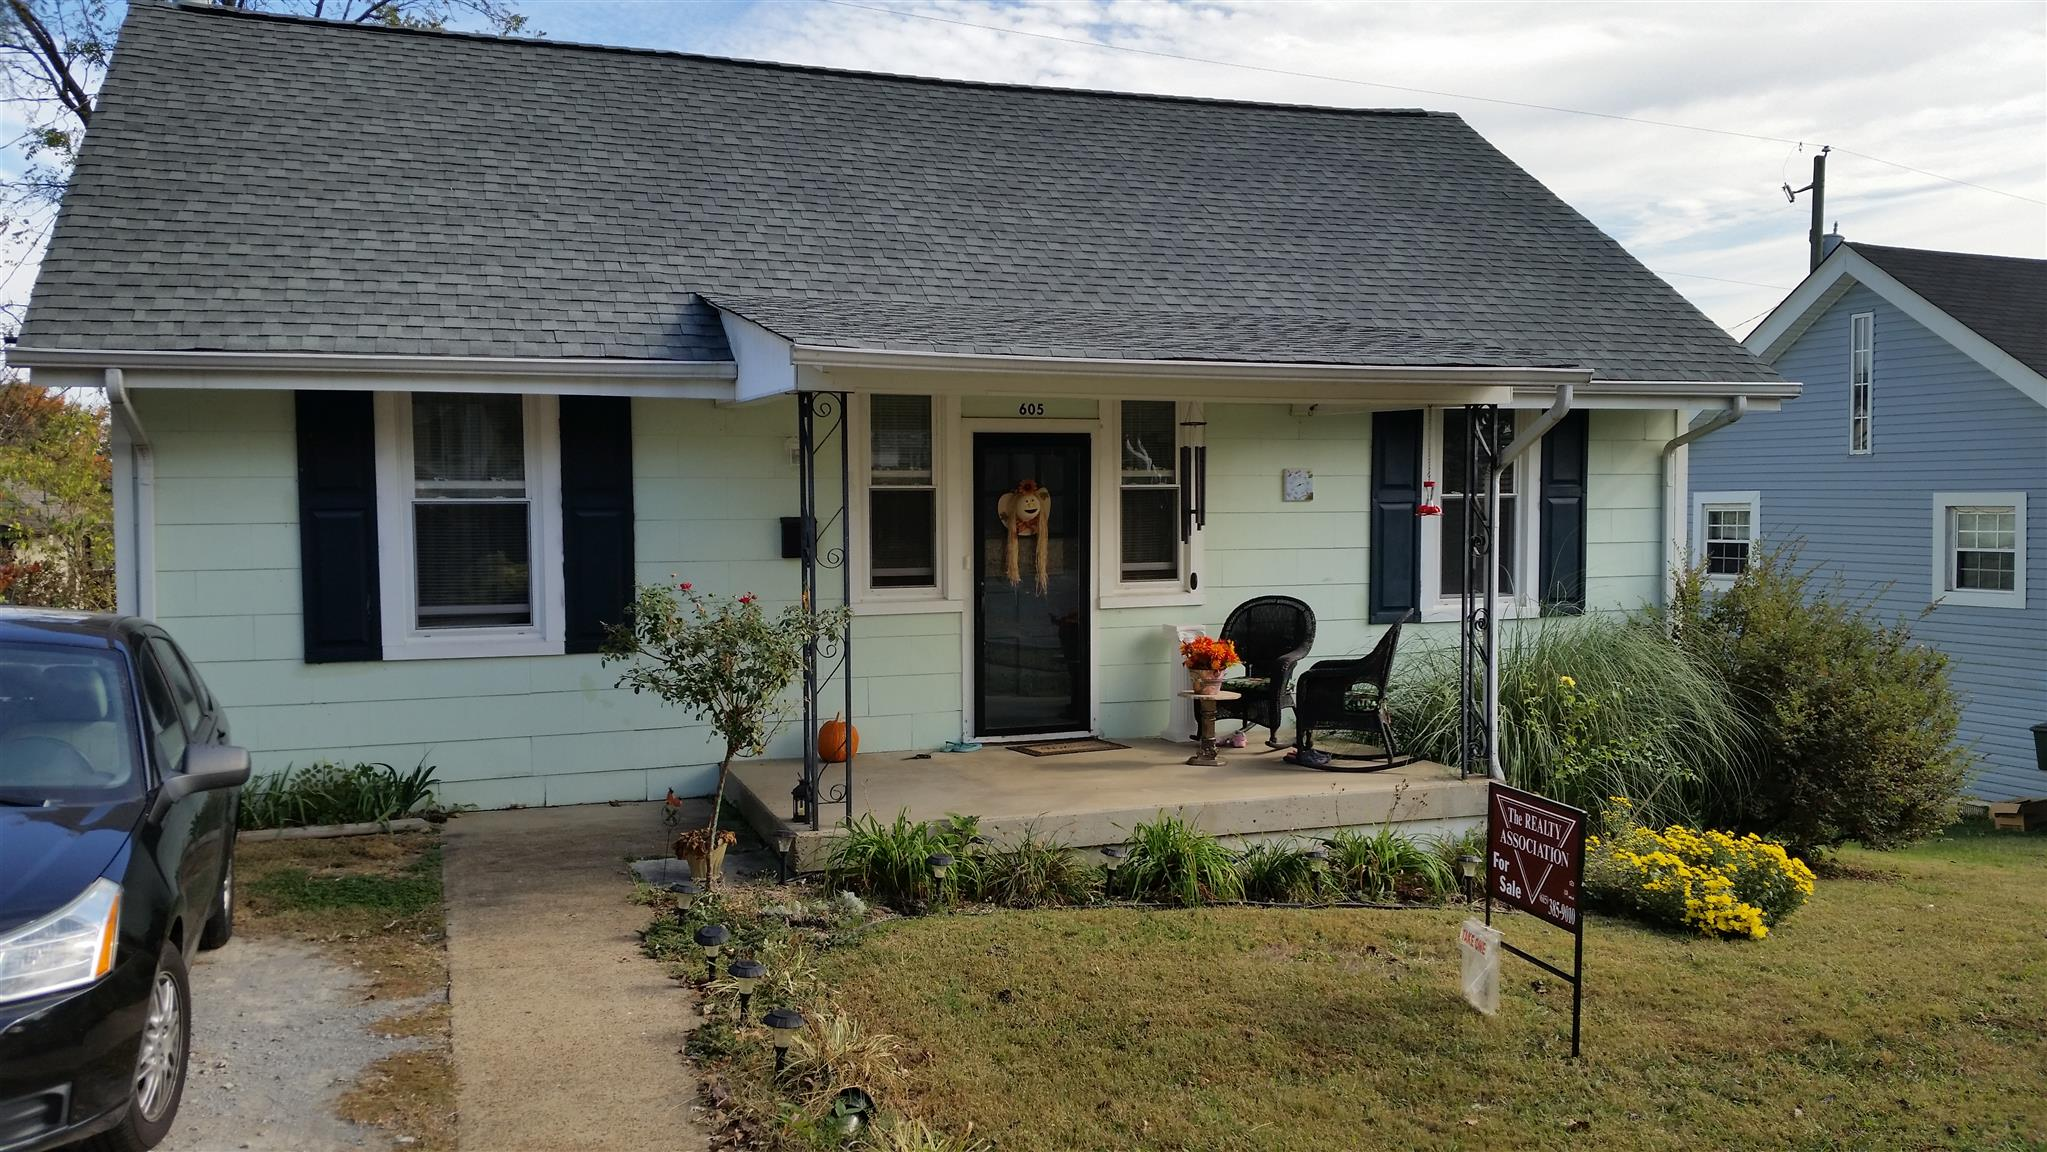 Photo of 605 Lawrence St  Old Hickory  TN